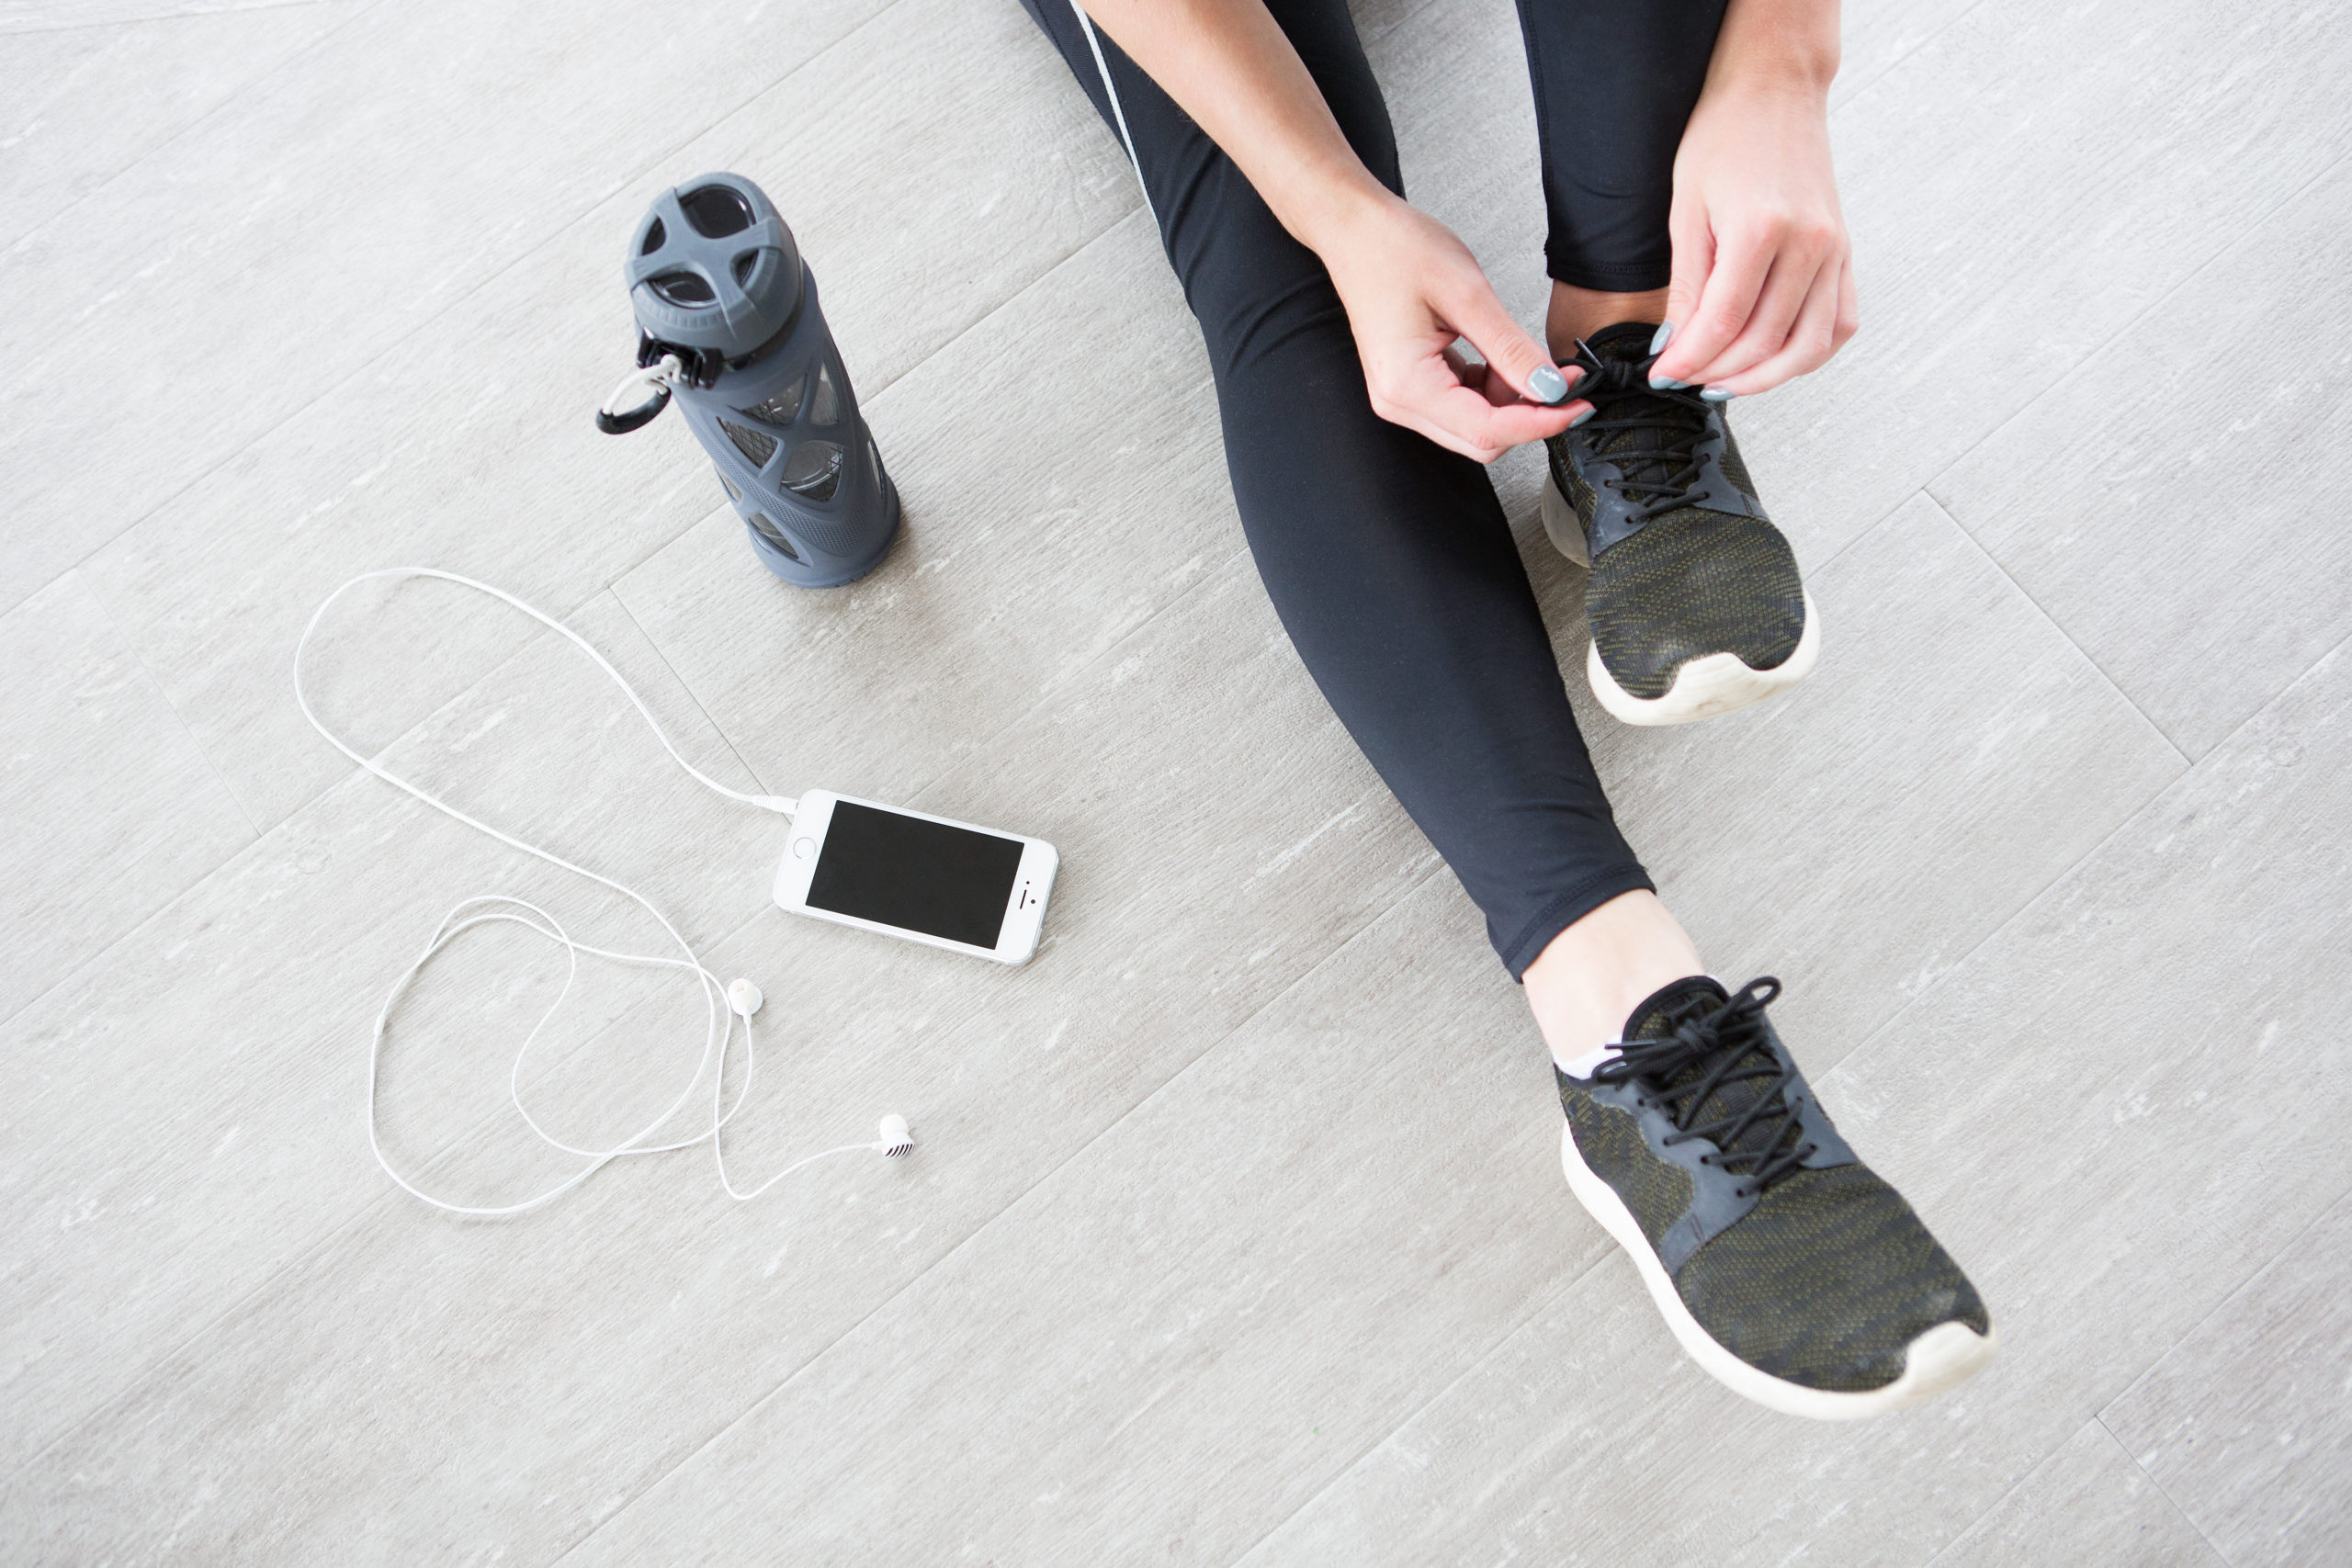 girl tying gym shoes on floor Free Home Workouts For A Good Sweat!